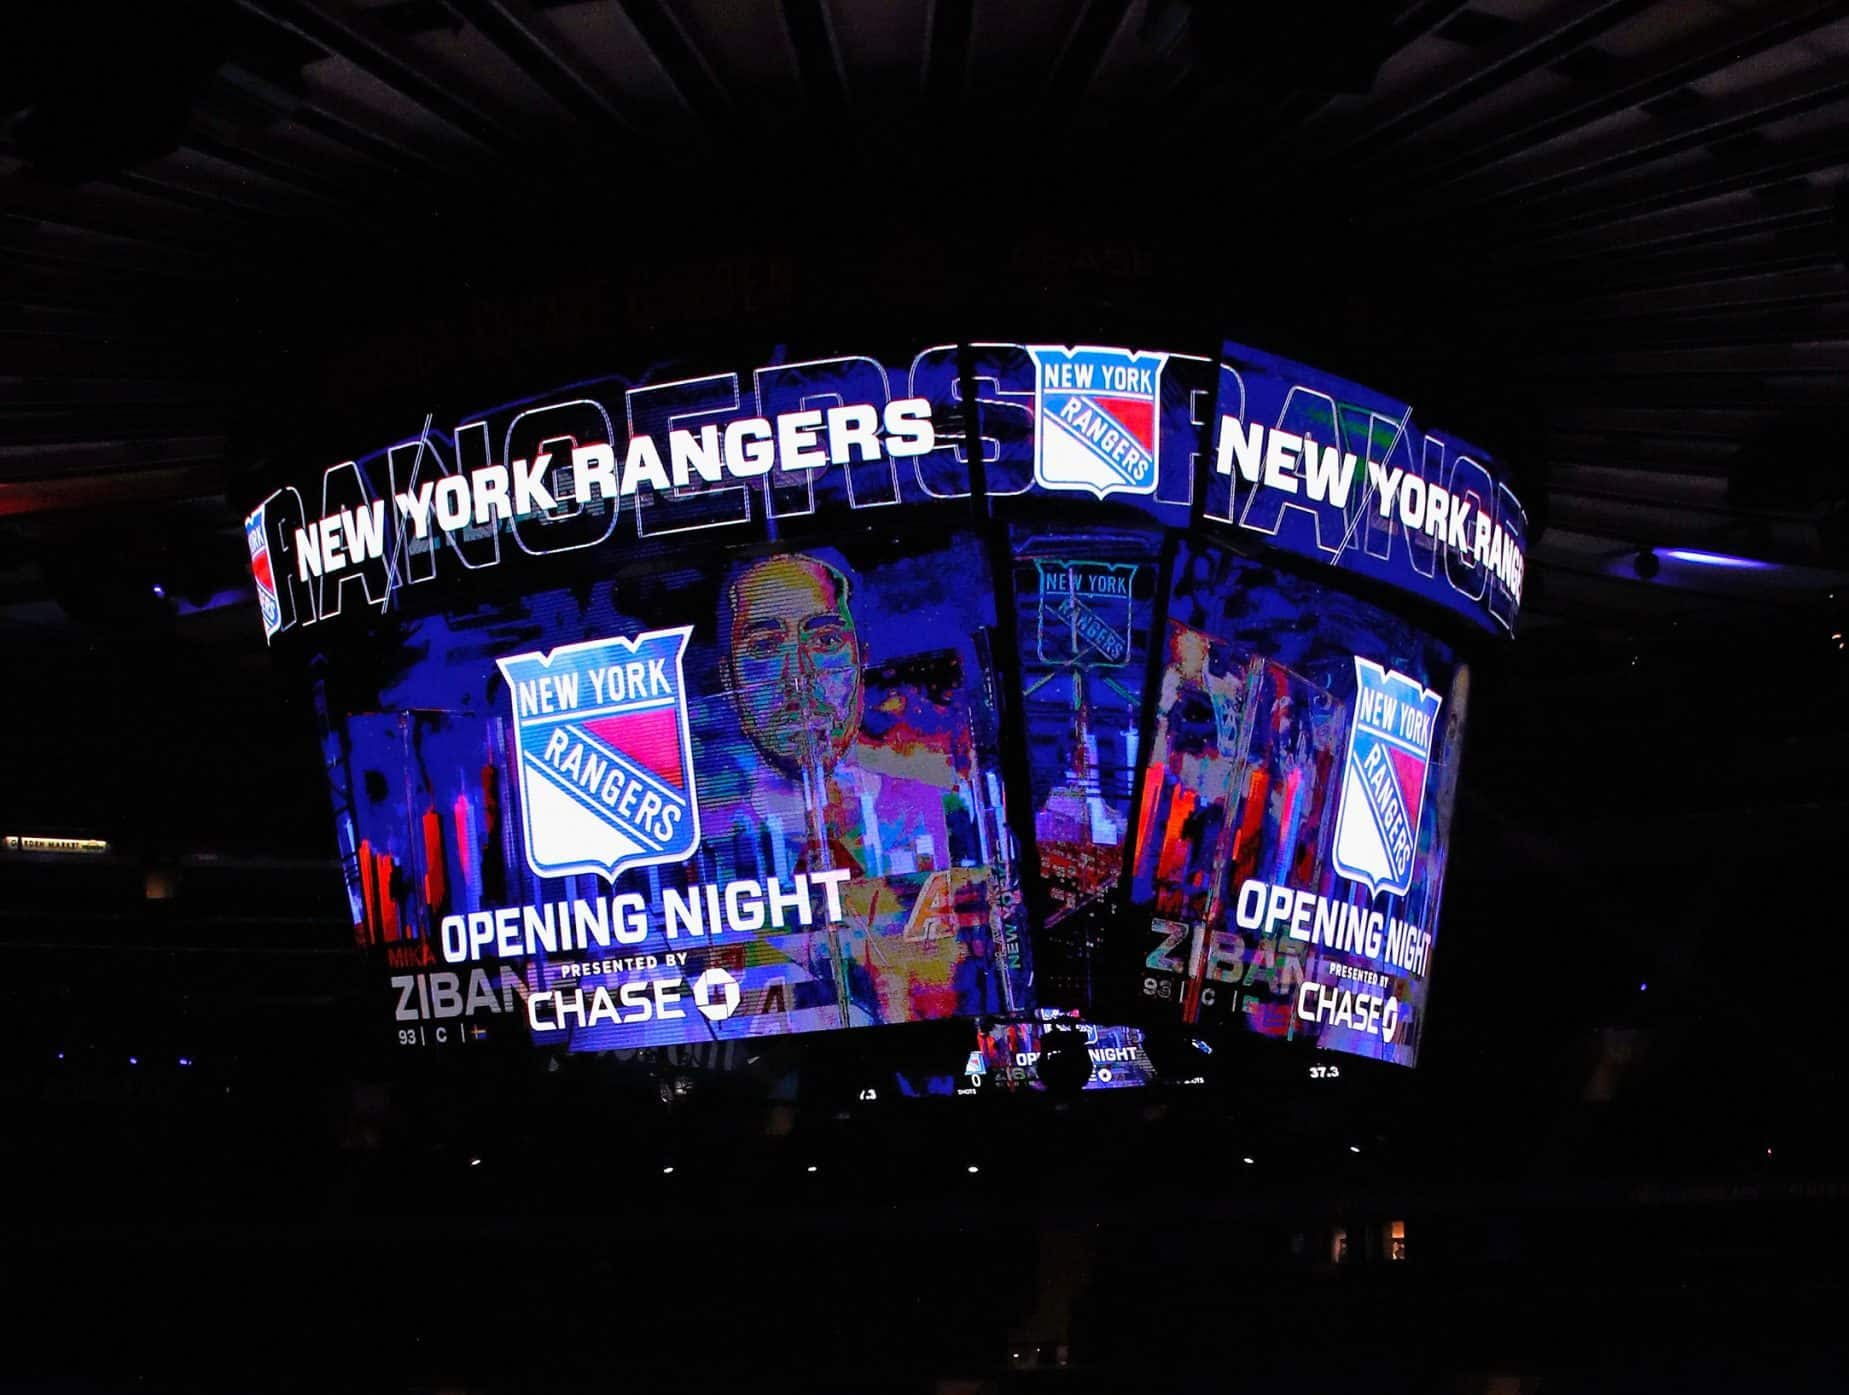 New York Rangers home opener no cake walk with Dallas Stars in town